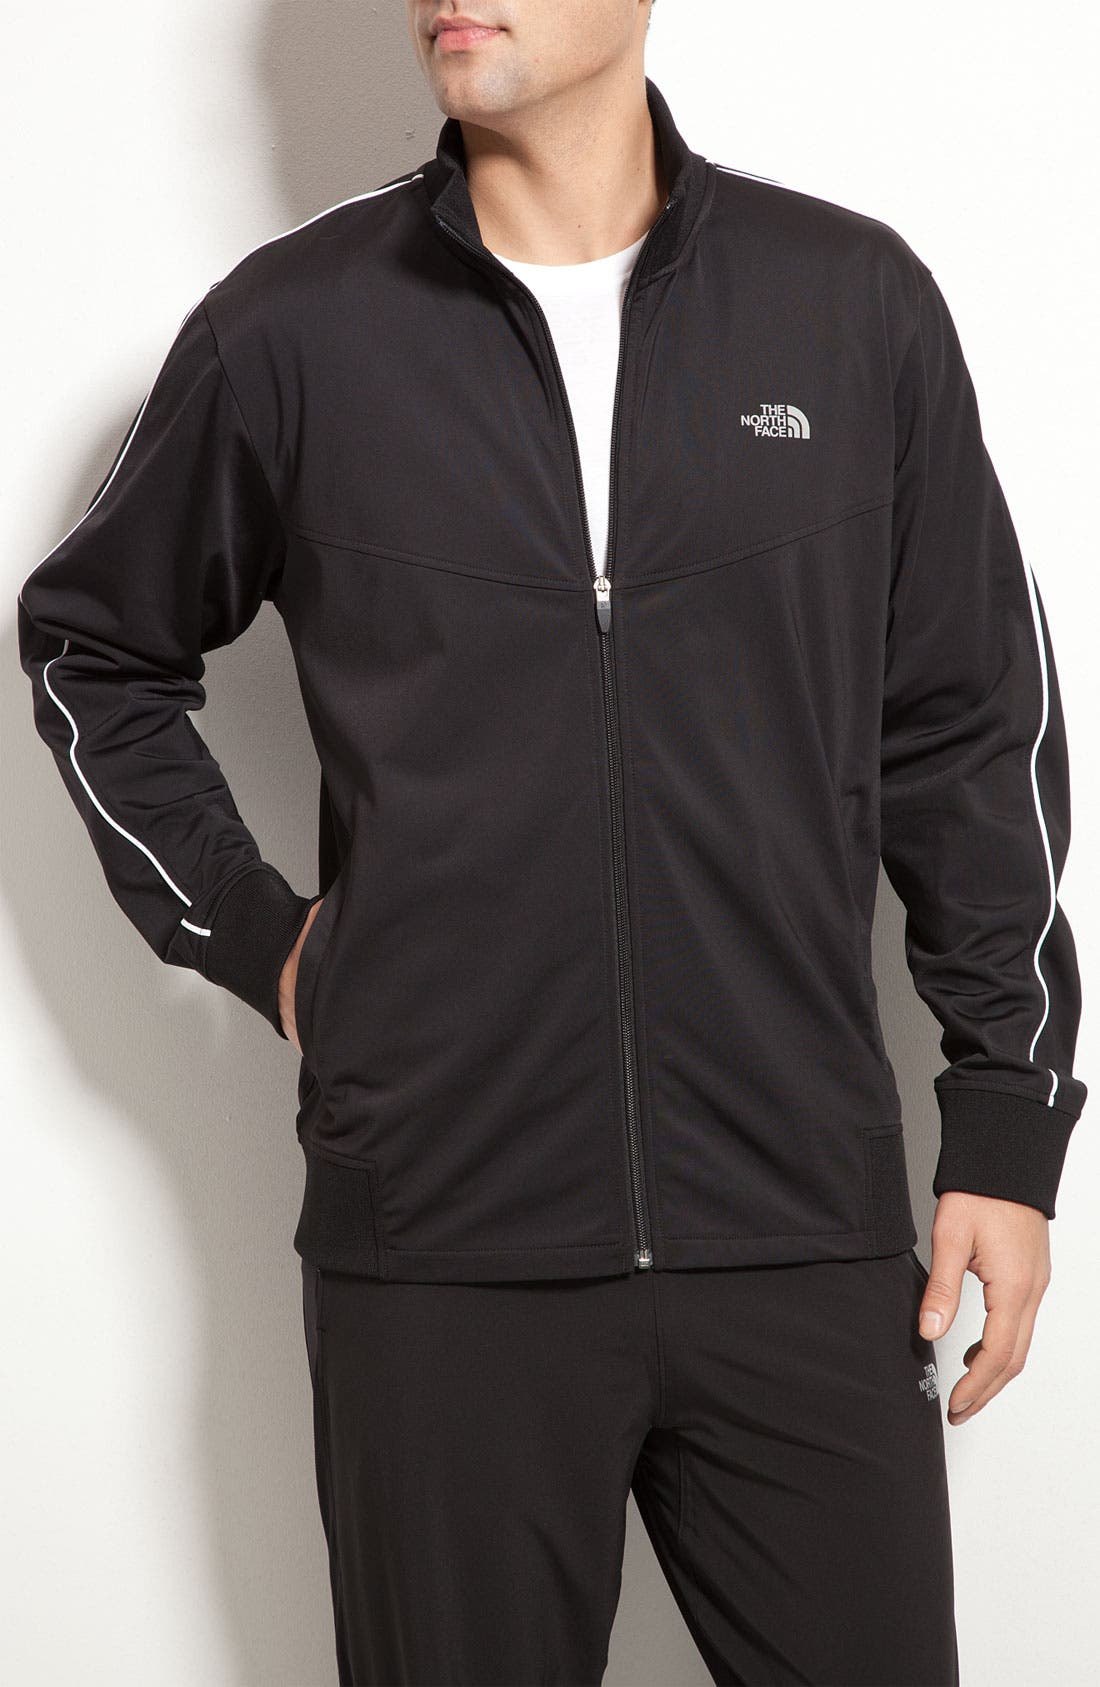 Main Image - The North Face 'Flex' Track Jacket